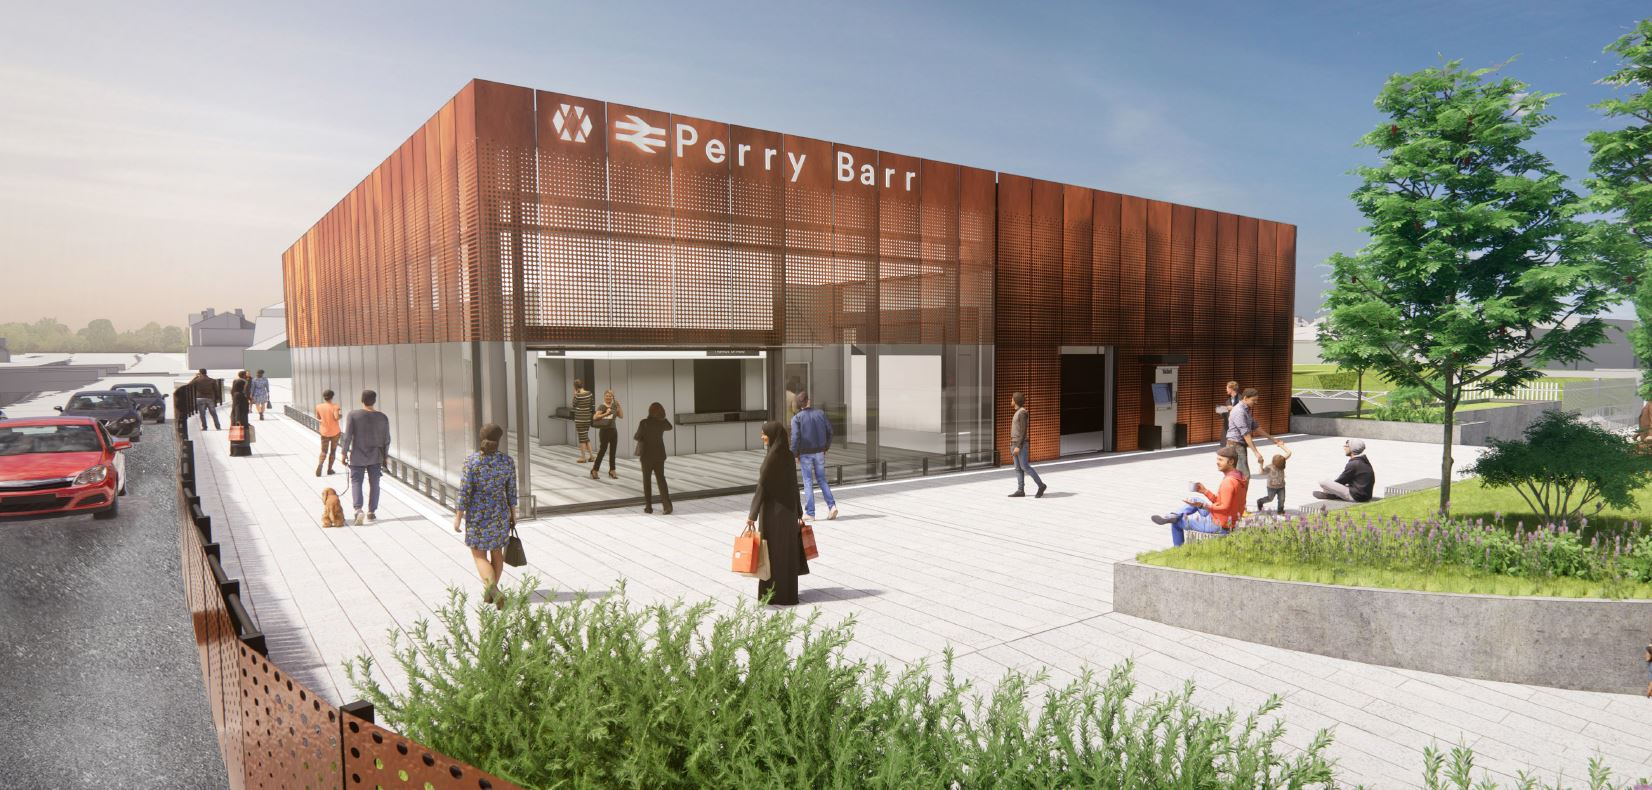 Designs for new Perry Barr railway station revised following feedback